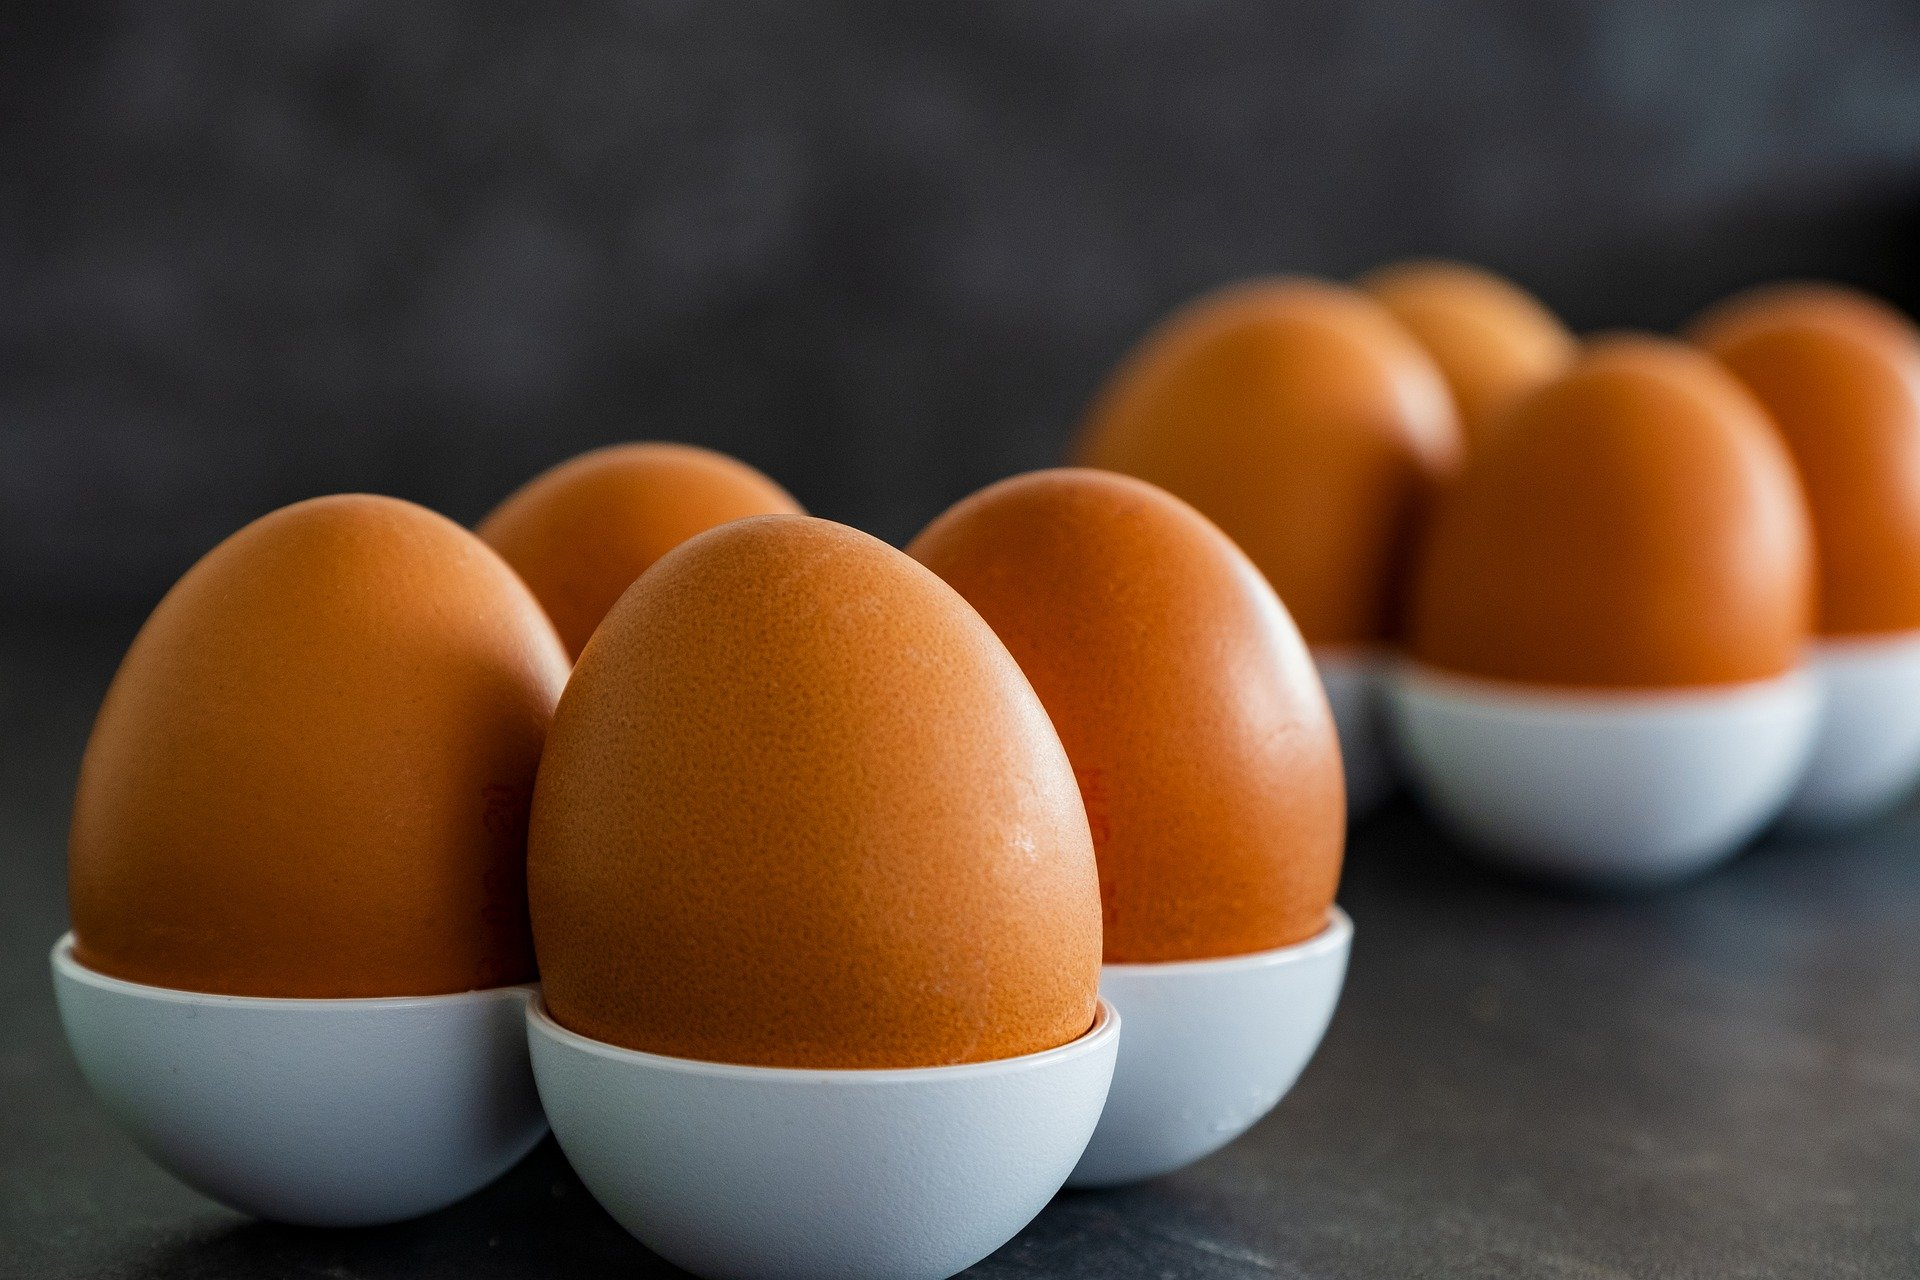 Know how to boil eggs - that the easiest task ever